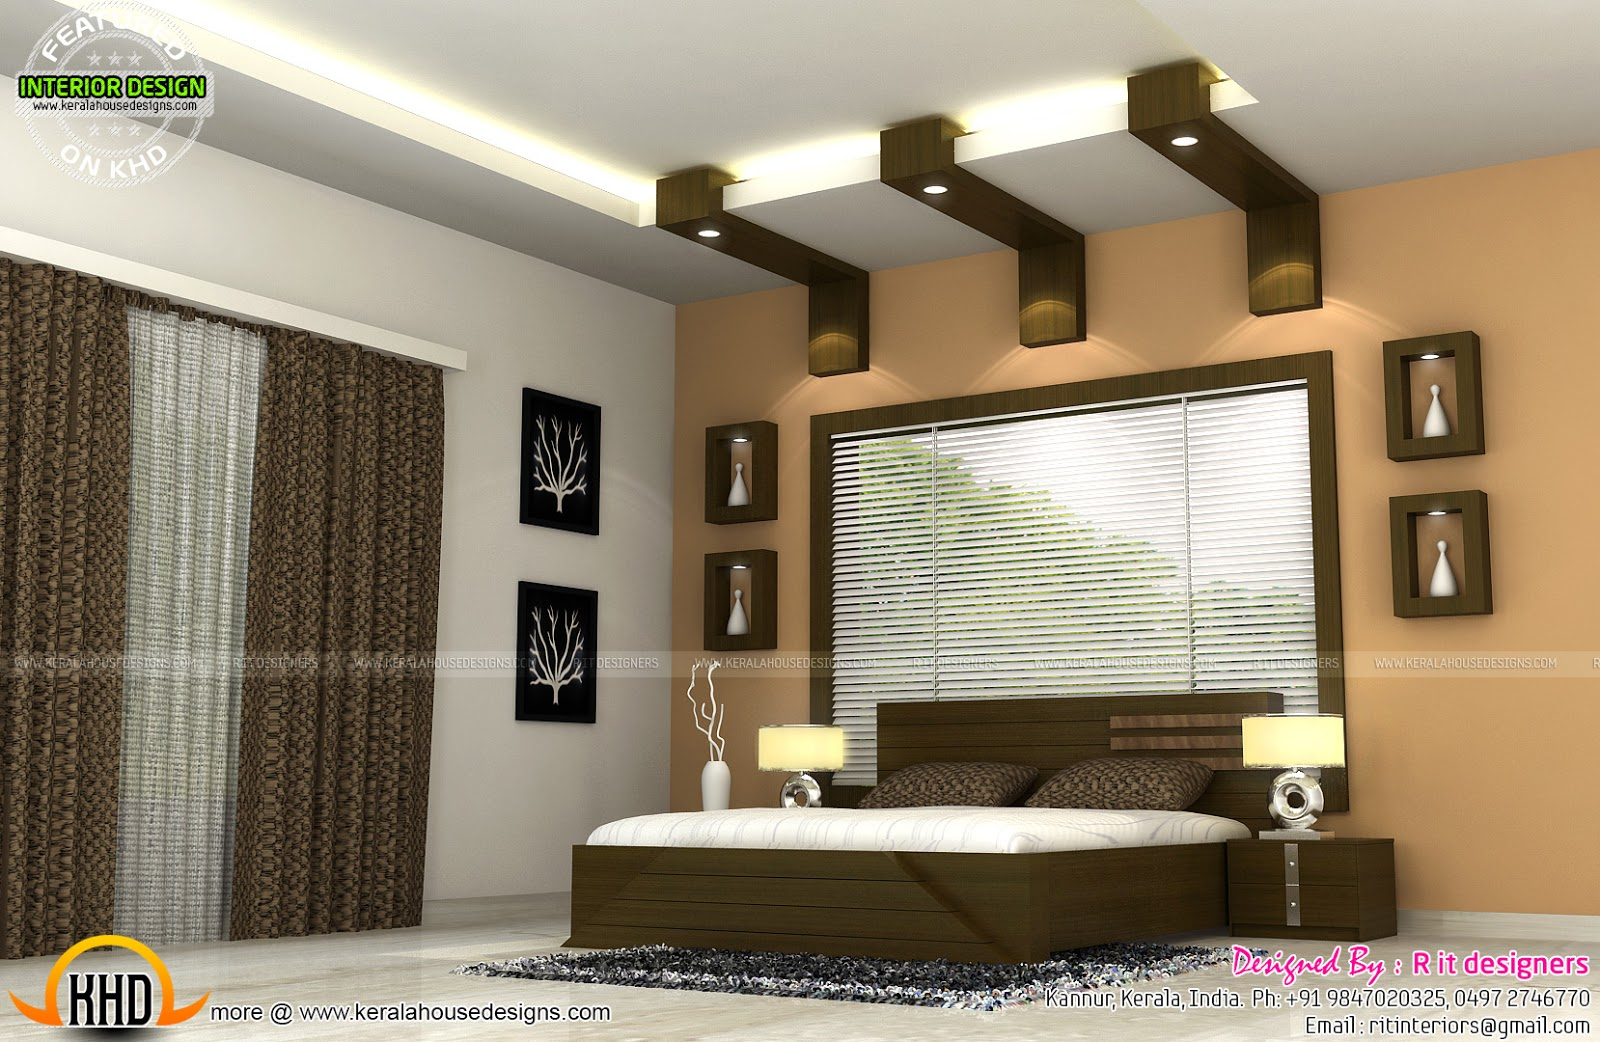 Interiors of bedrooms and kitchen kerala home design and Low cost interior design ideas india